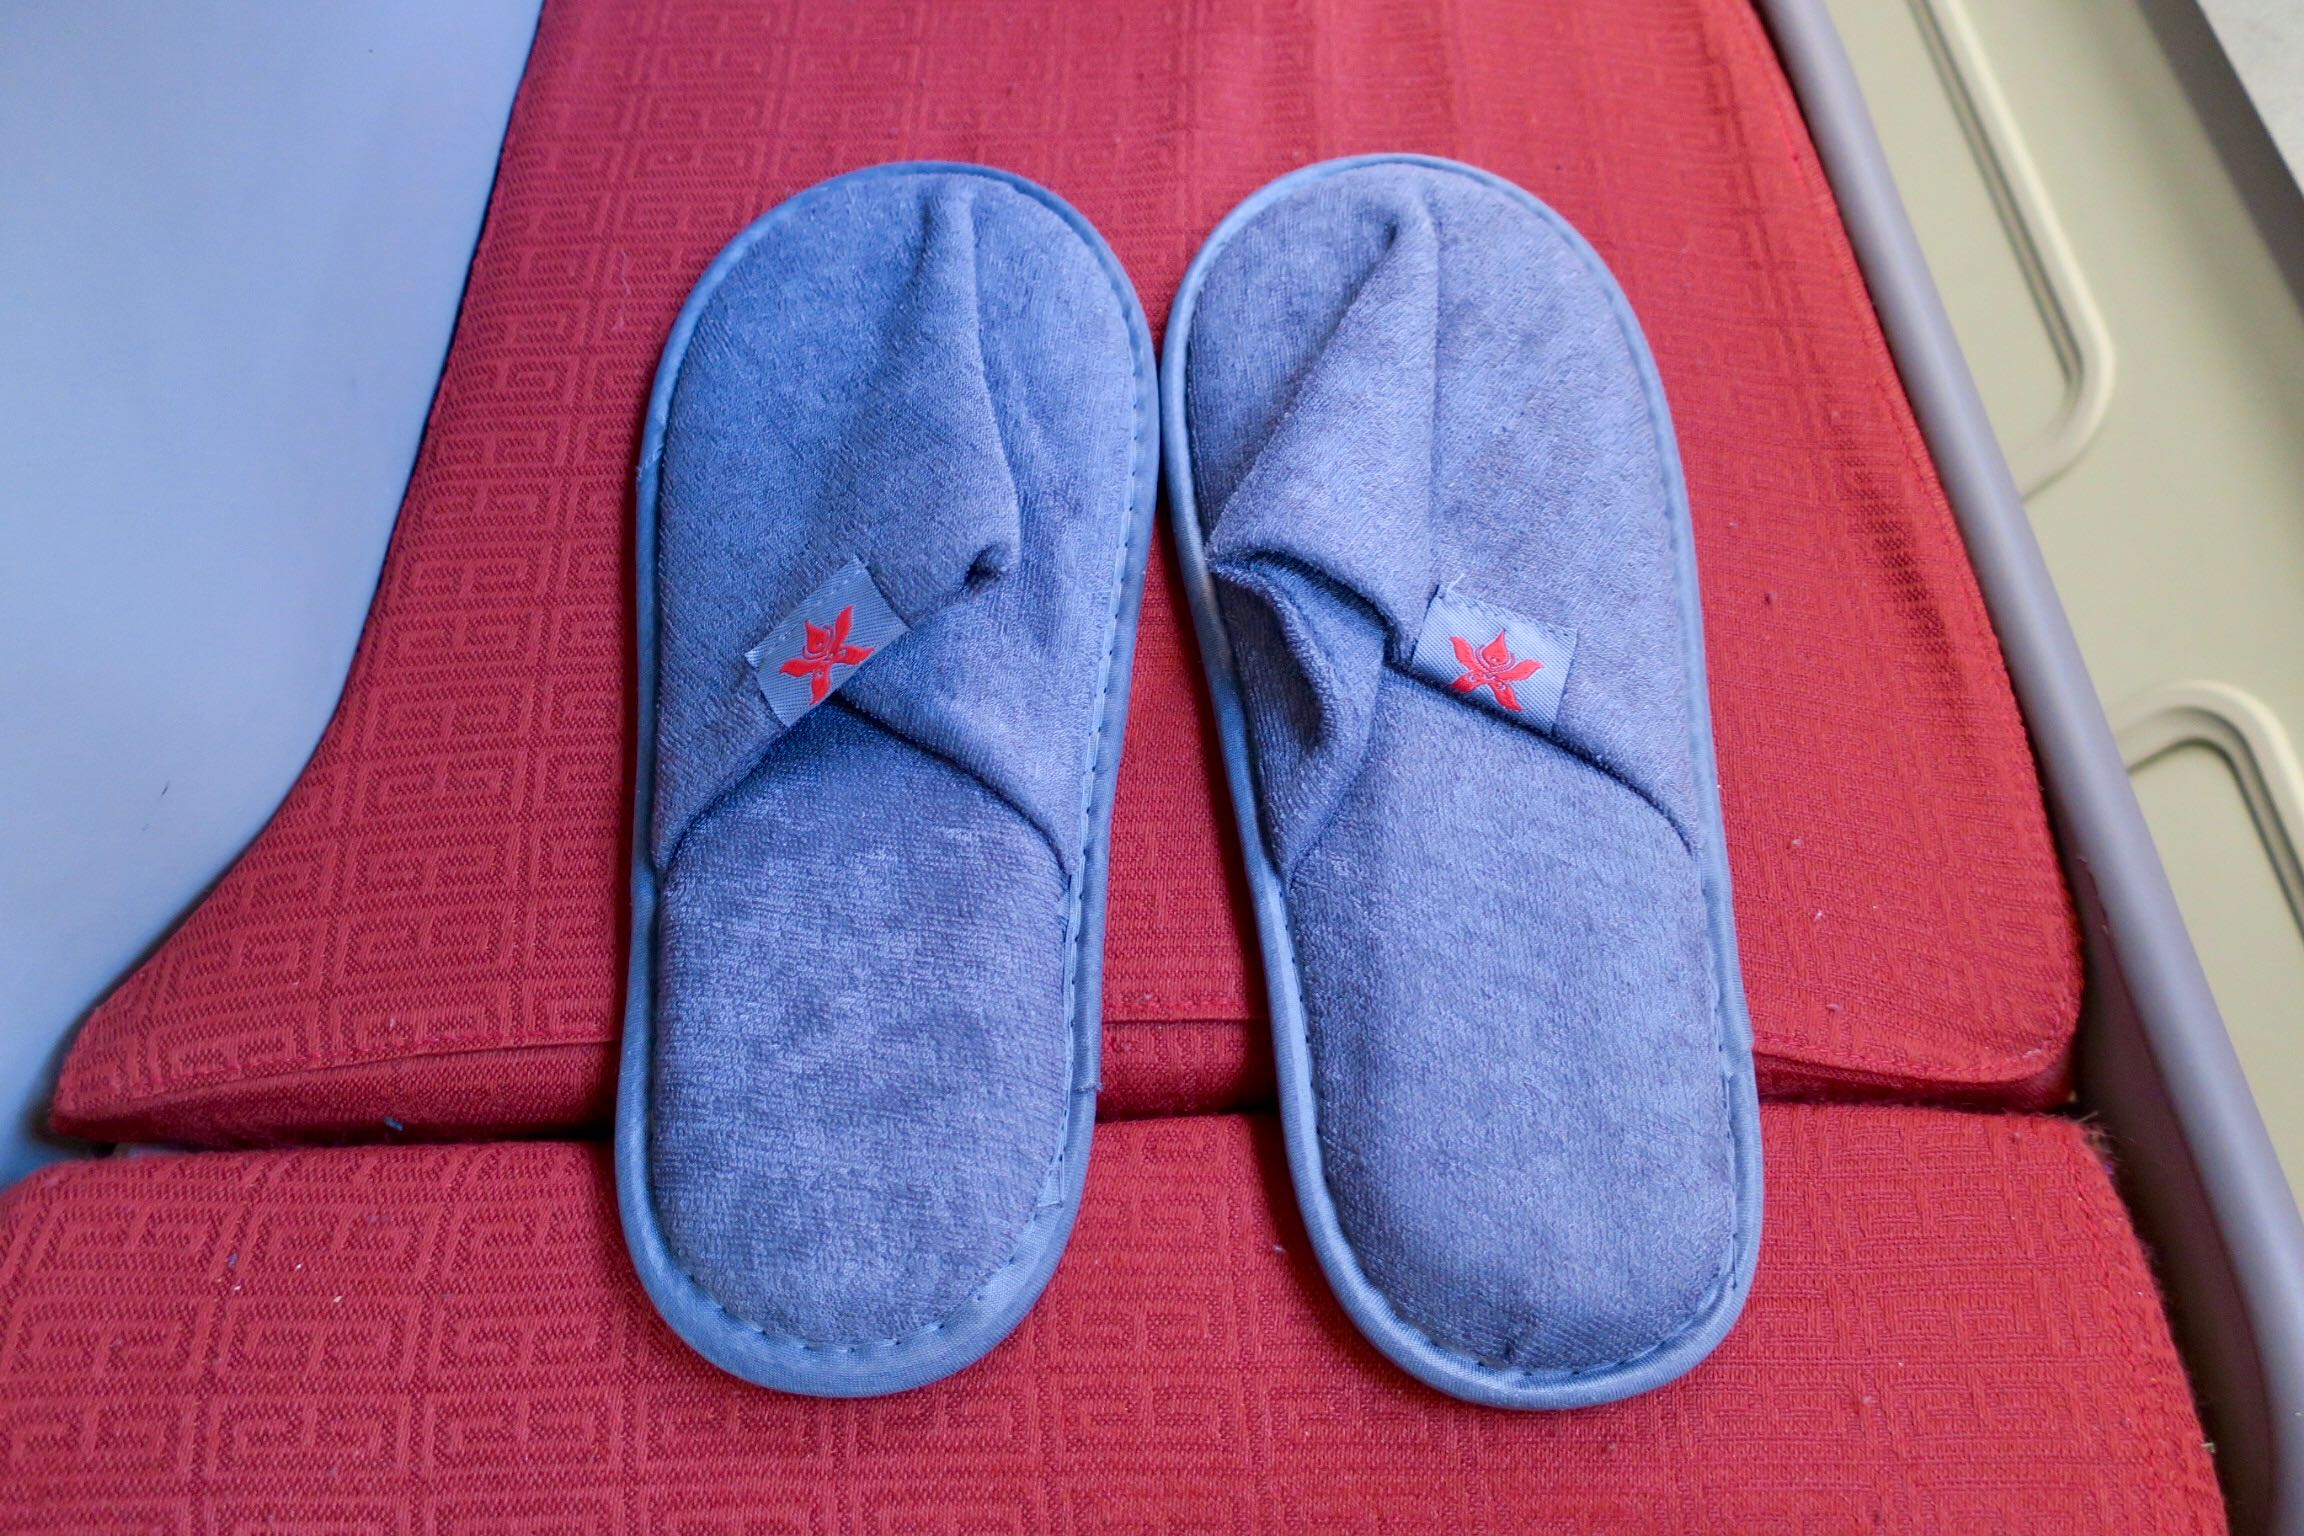 Hong Kong Airlines A330 Business Class slippers